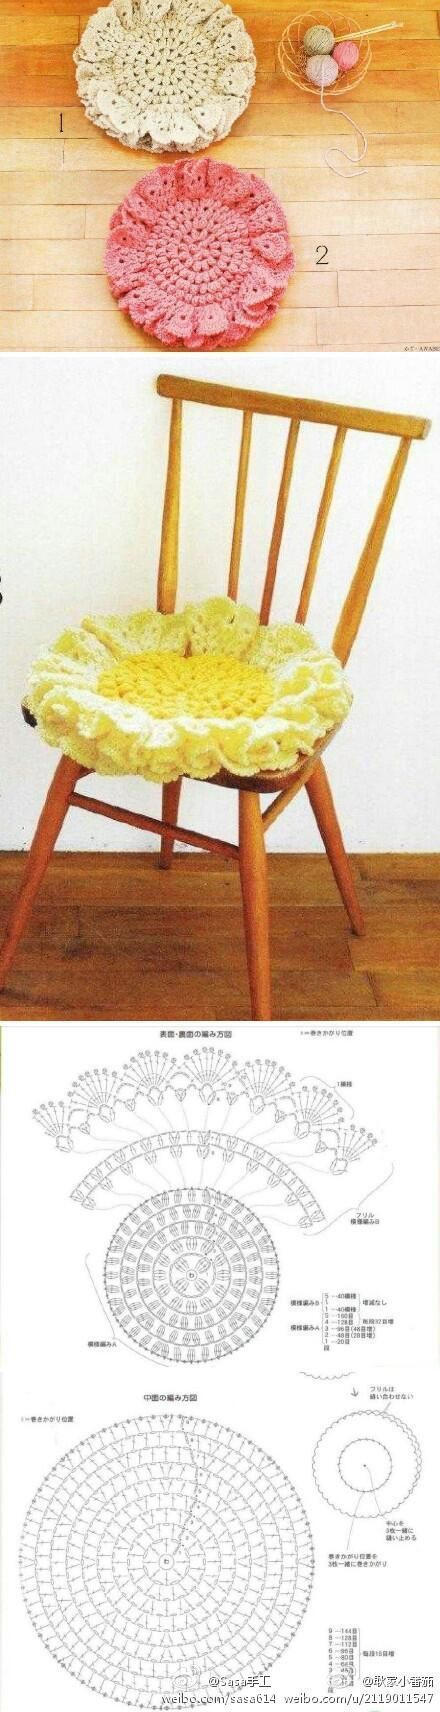 fluffy crochet - 2 layers - much nicer  (and easier) than a real cushion!